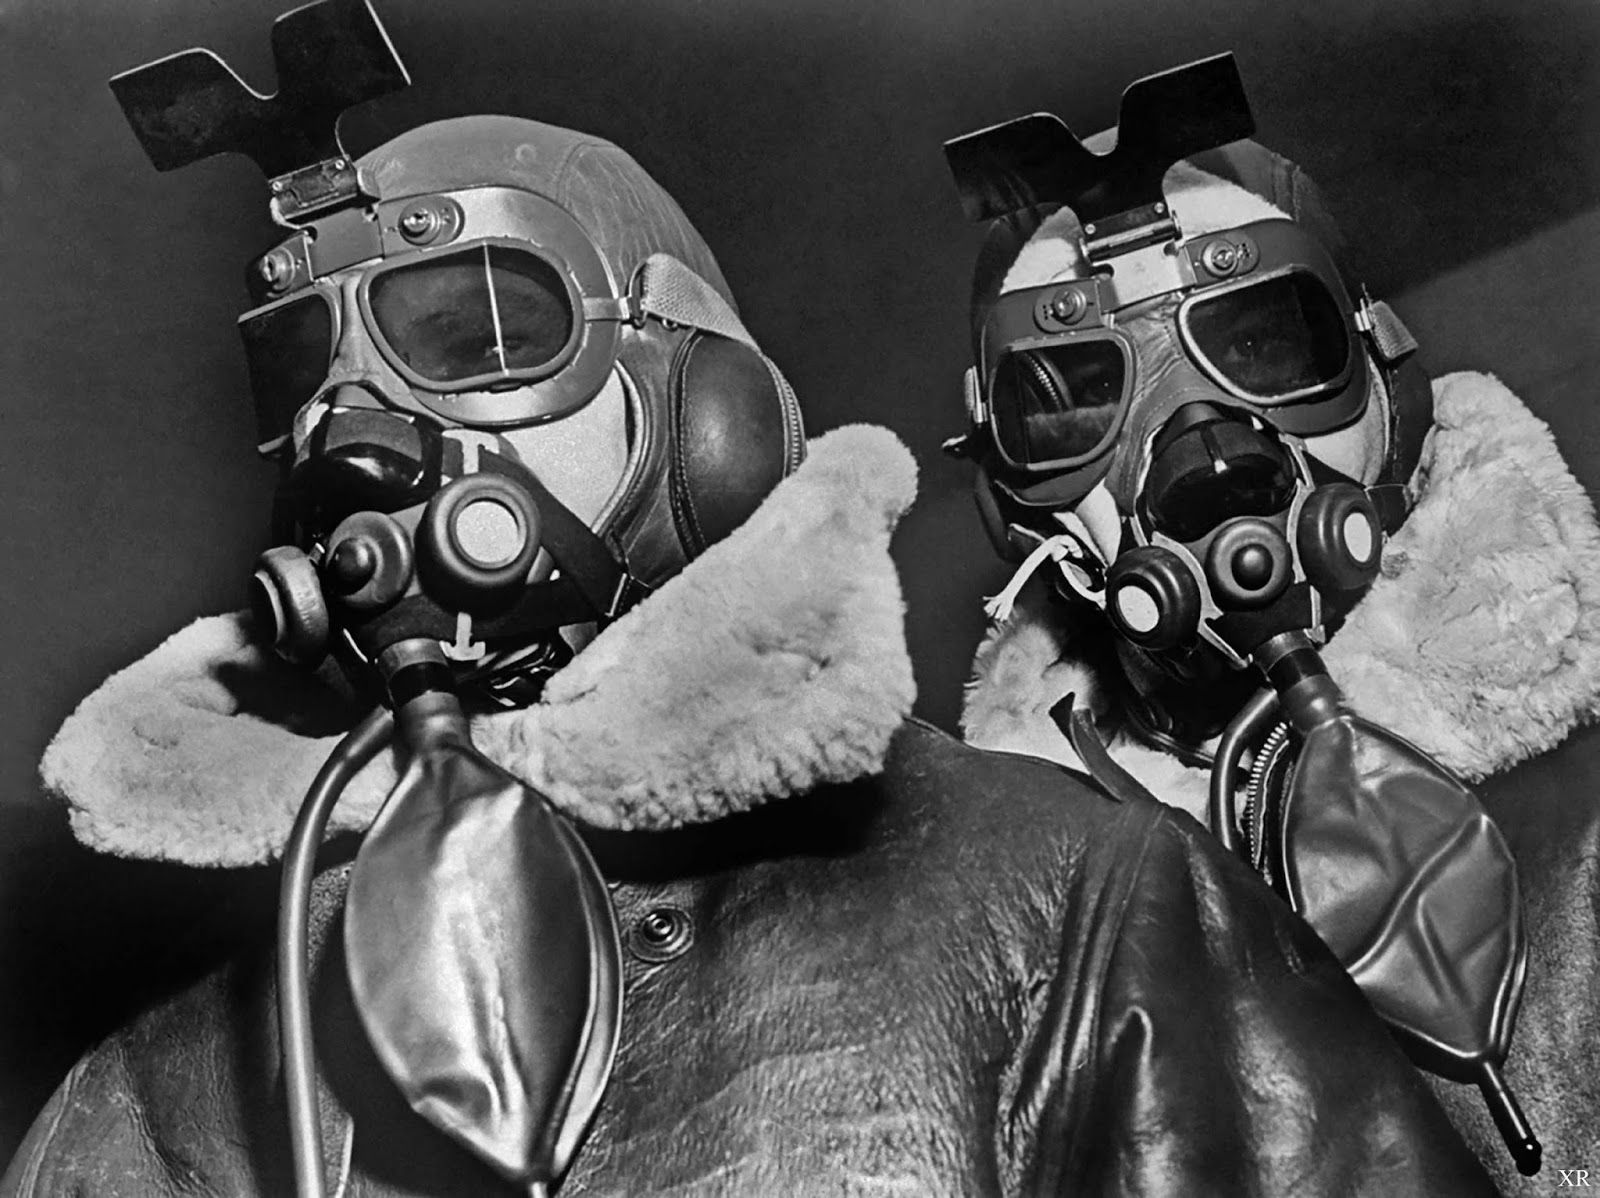 Pilots of American 8th Bomber Command wearing high altitude